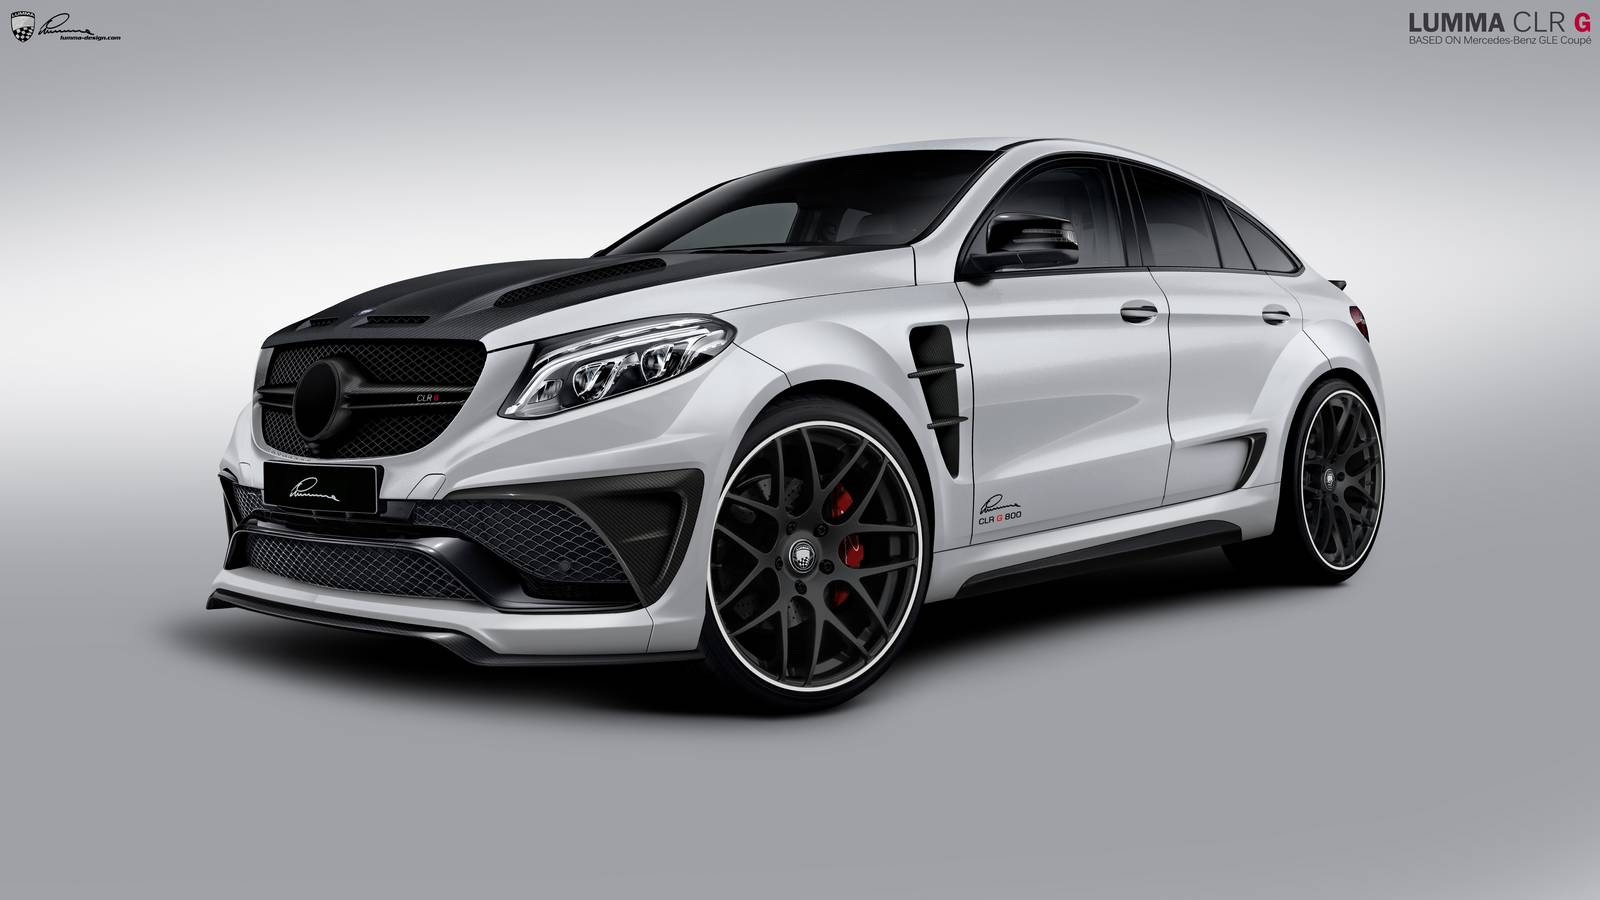 Official lumma clr g800 mercedes amg gle63 coupe gtspirit for Mercedes benz amg kit